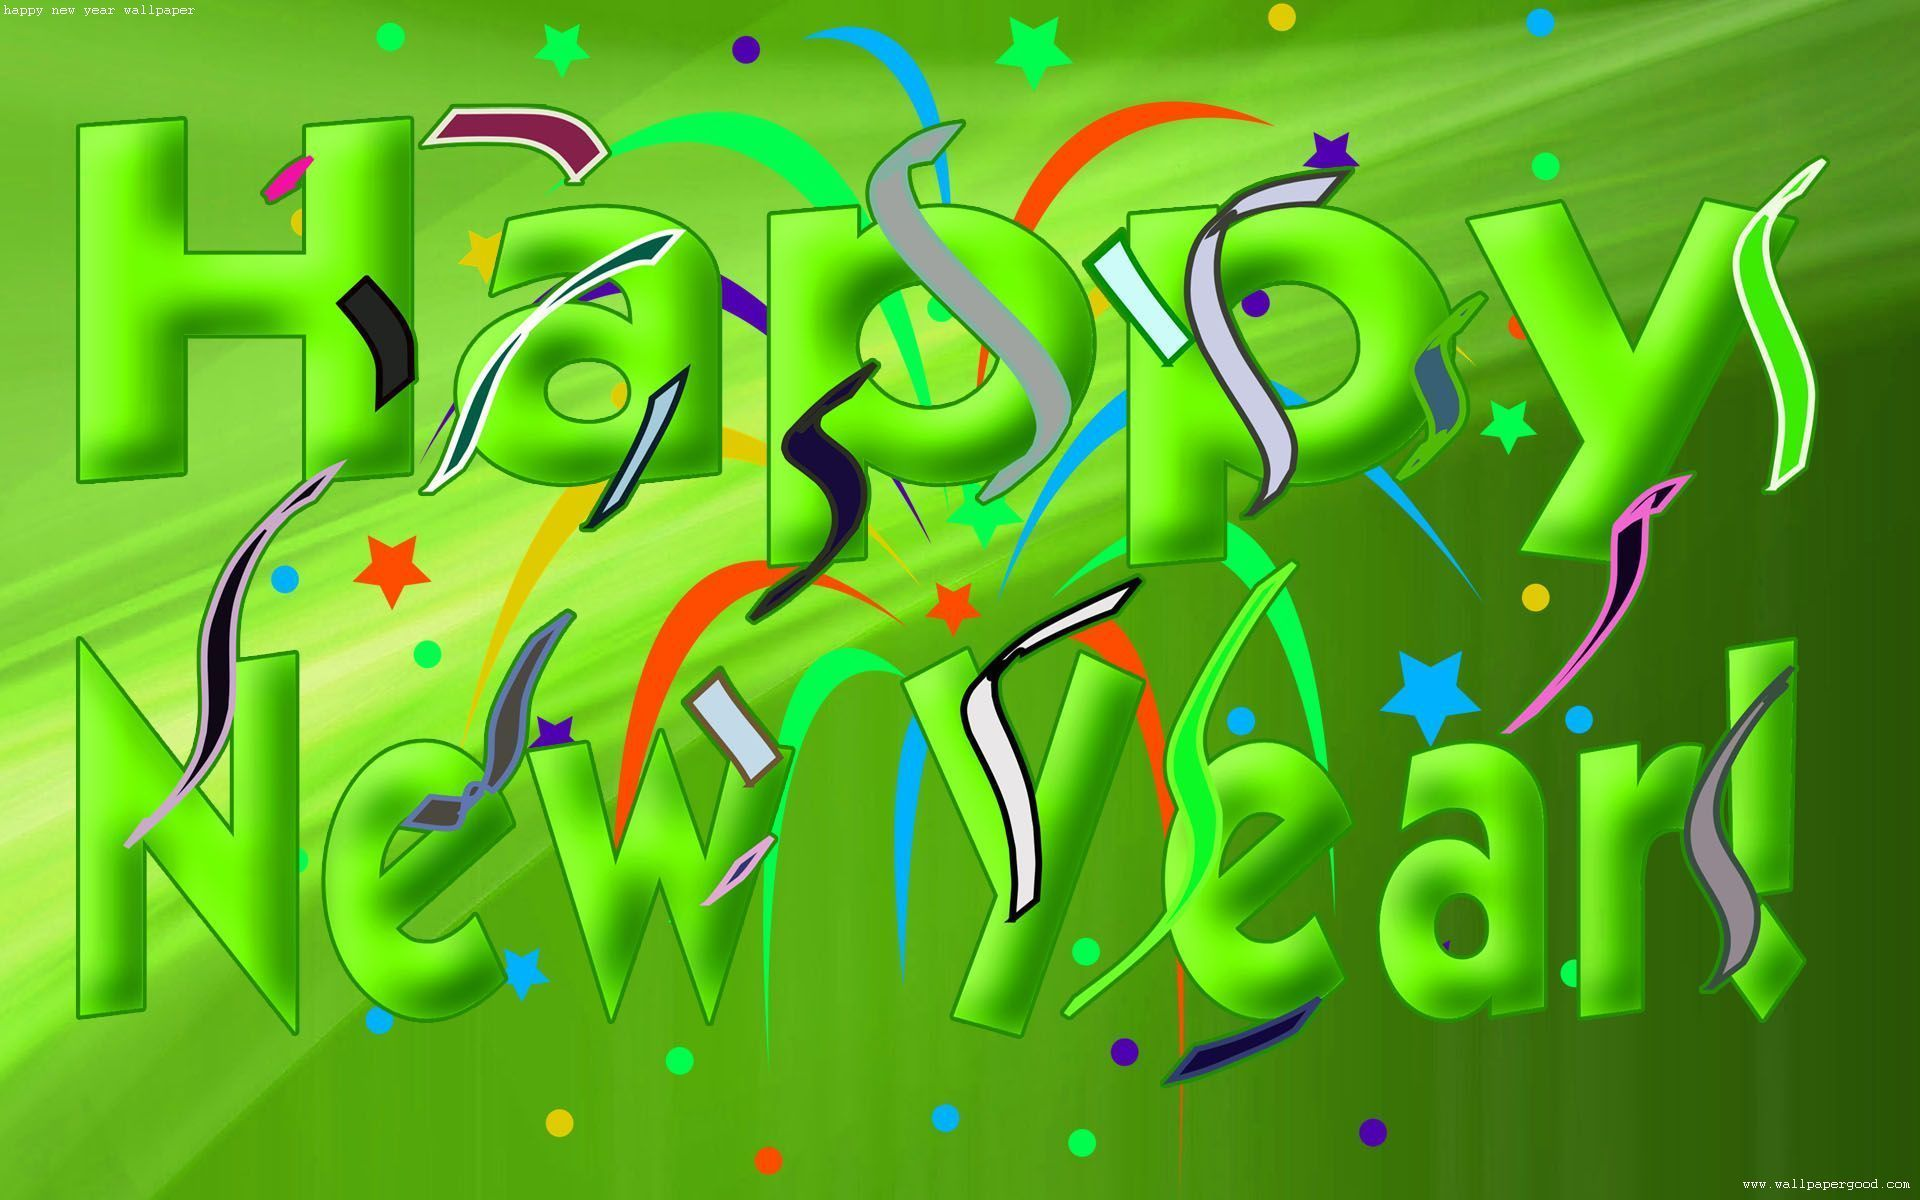 Happy New Year 2021 Christmas Wallpaper Android Happy New Year Background Merry Christmas Wallpaper